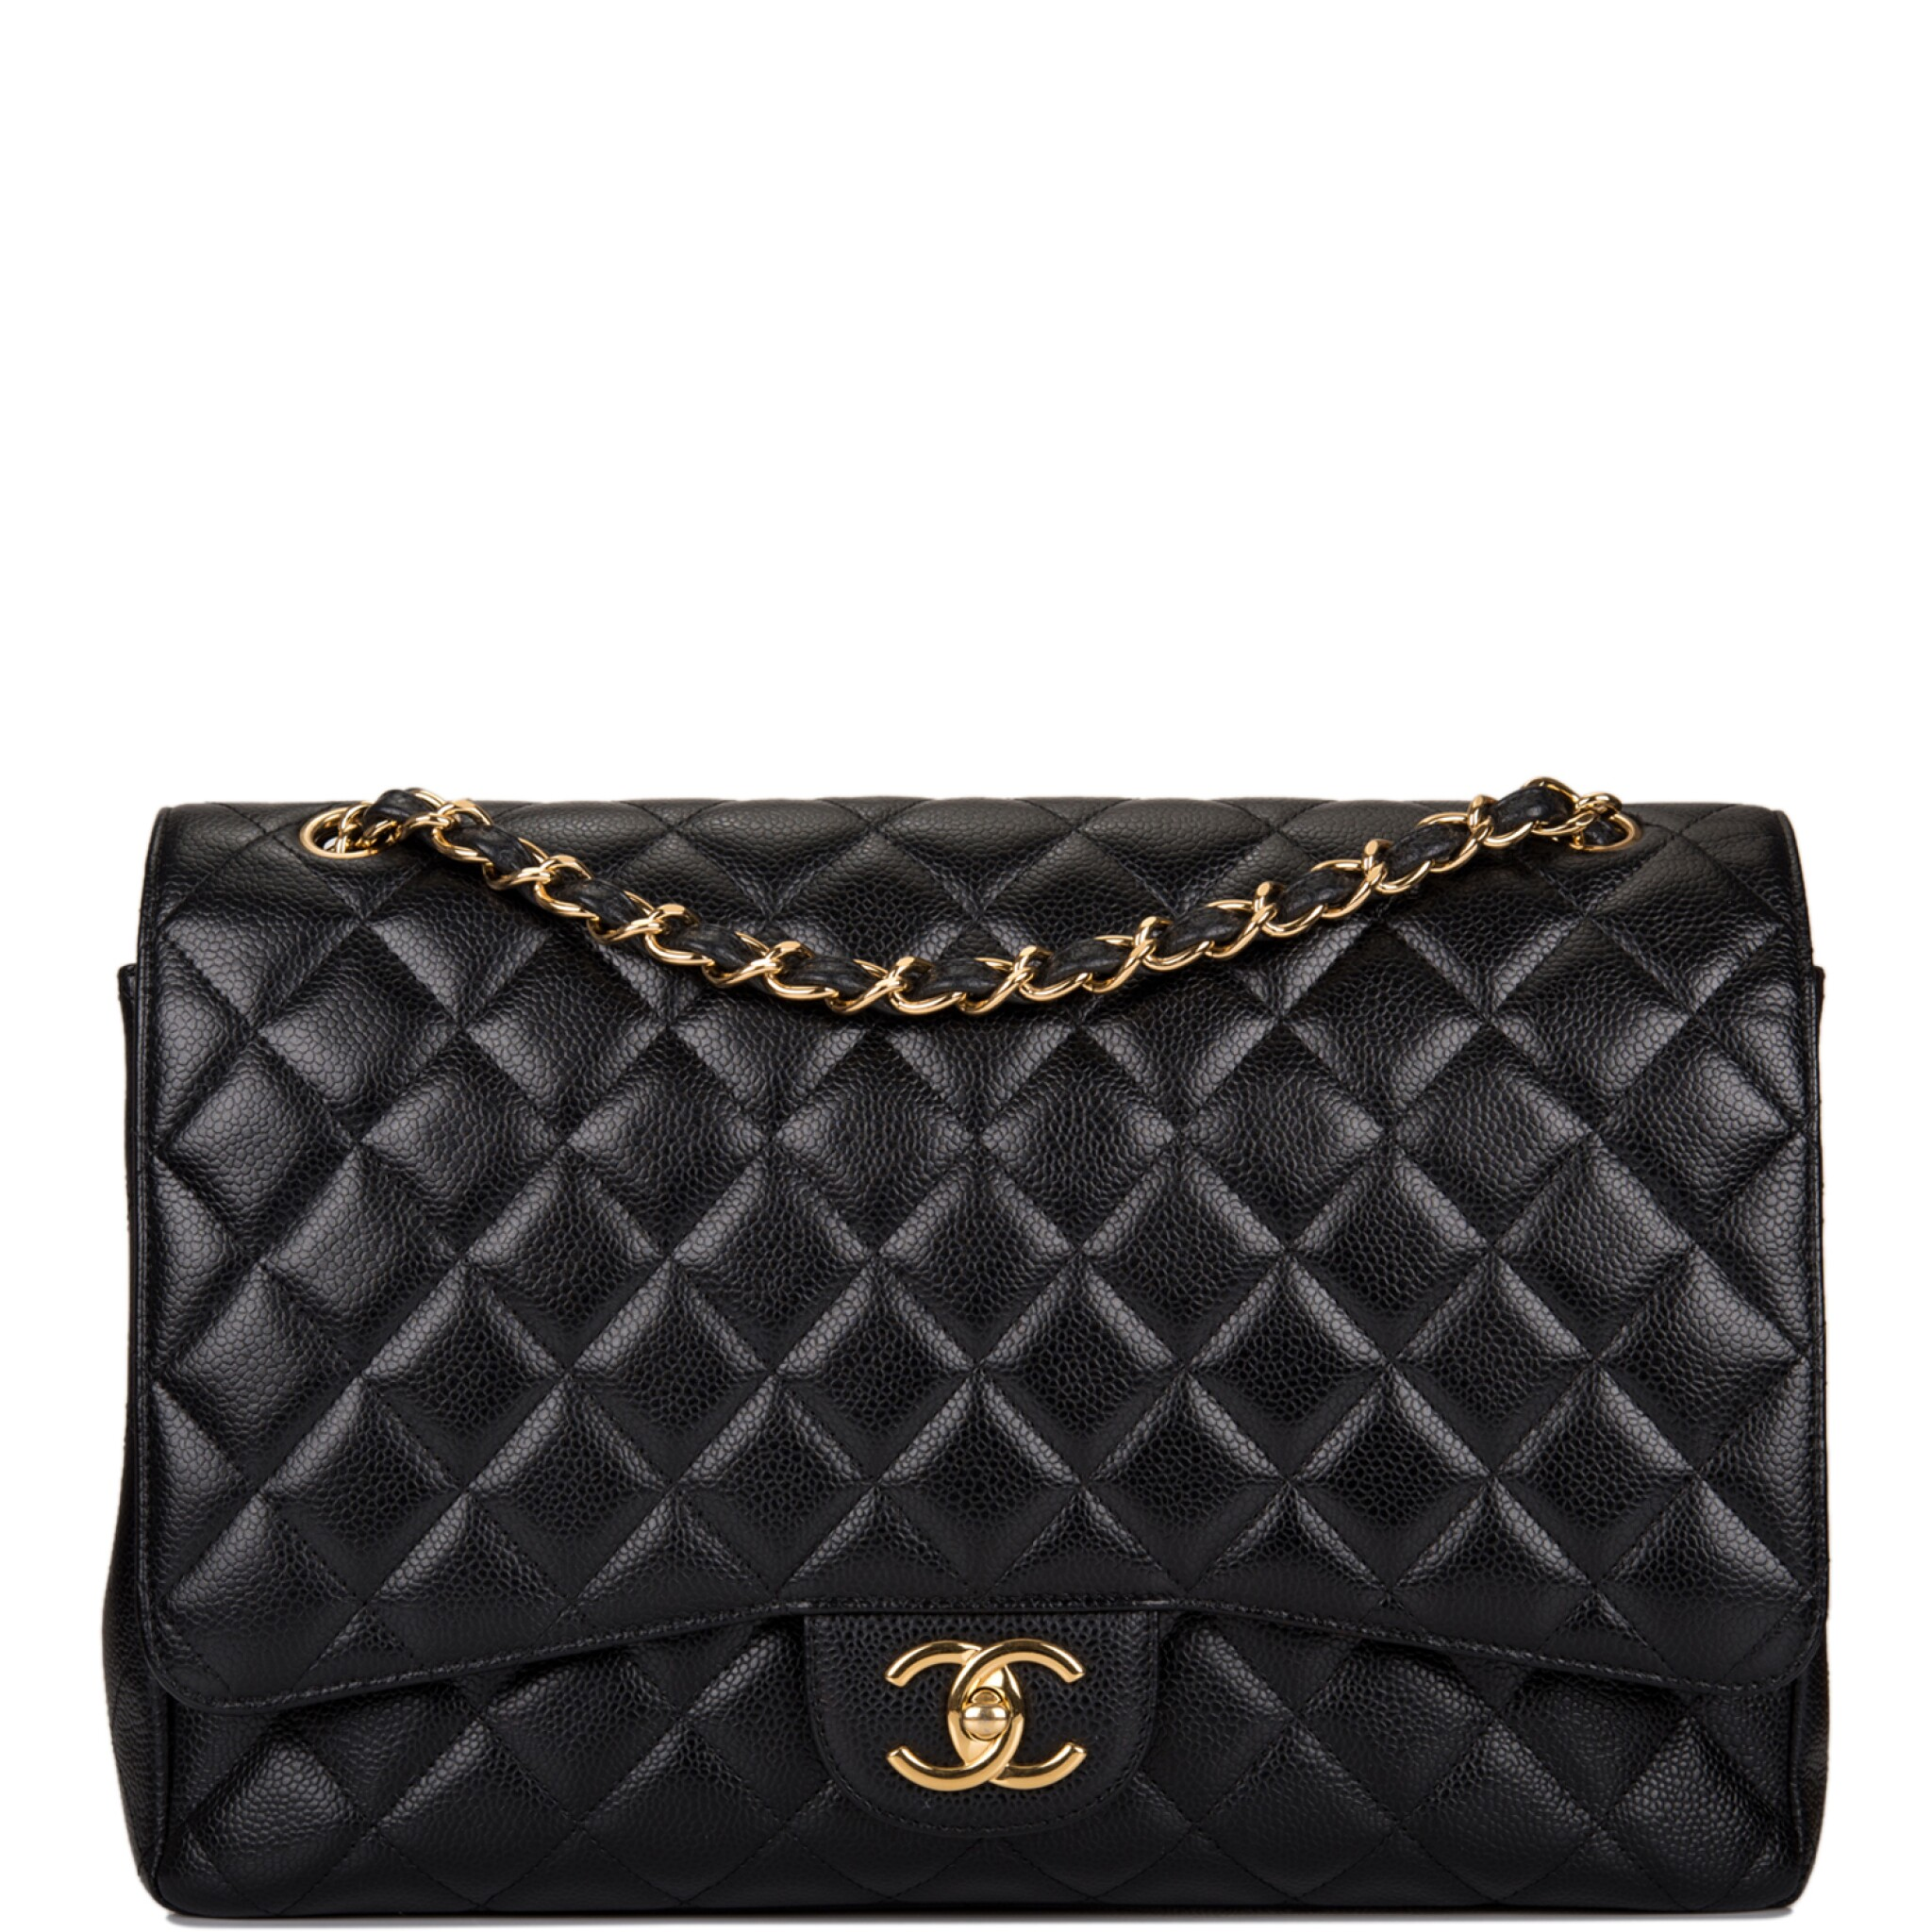 View full screen - View 1 of Lot 60. Chanel Quilted Maxi Classic Double Flap Bag of Black Caviar Leather with Gold Hardware.